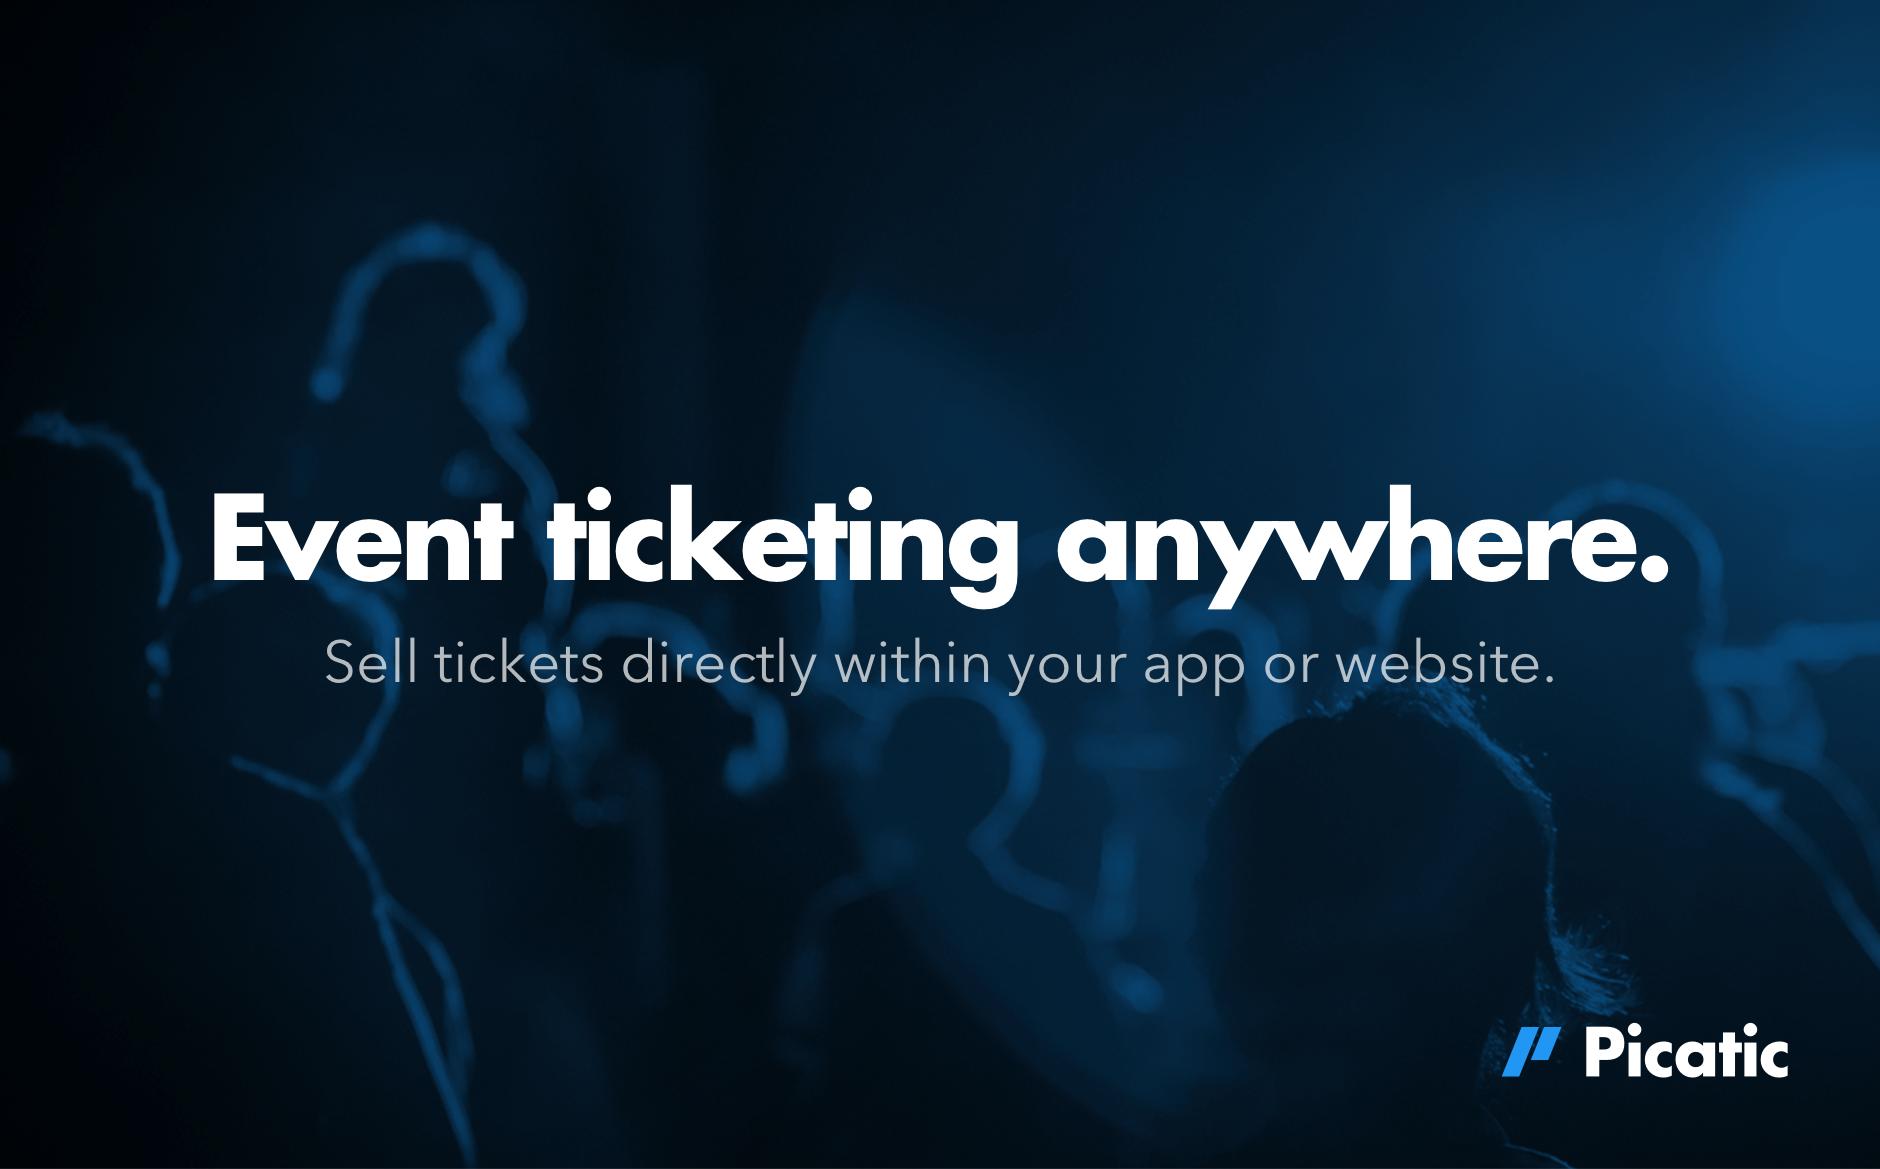 Picatic API. Event ticketing anywhere. Sell tickets directly within your app or website.